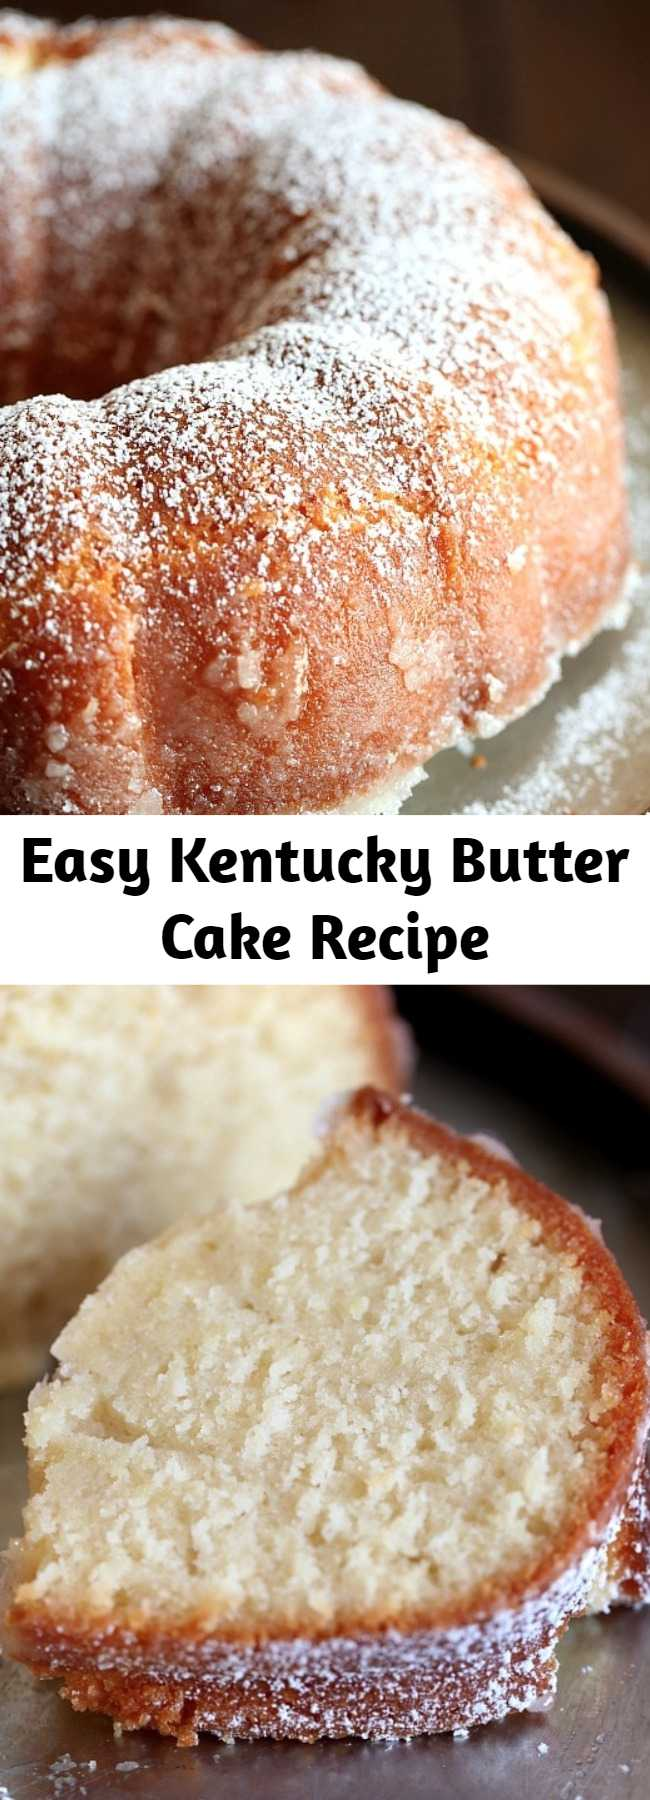 Easy Kentucky Butter Cake Recipe - This is the most epic pound cake recipe ever! This Kentucky Butter Cake recipe is CRAZY moist, buttery and coated with a sweet buttery sauce that crusts the outside and soaks into the cake making it amazing for days. What you get is a stunning, sweet, buttery, soft cake that is as perfect on its own as it is topped with strawberries and whipped cream!